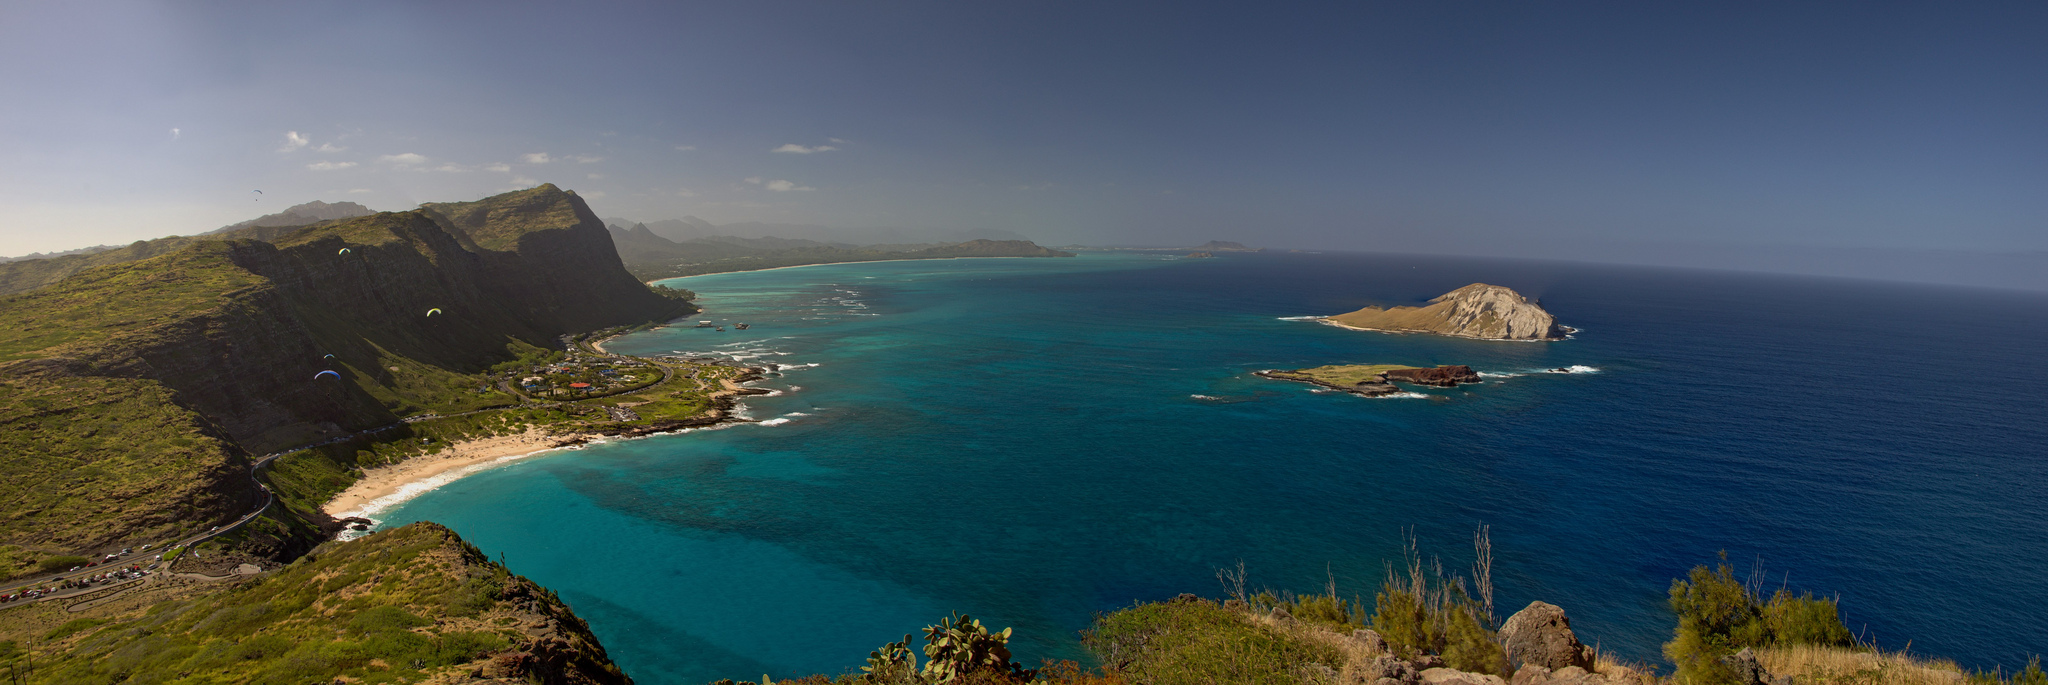 makapuu-point-2